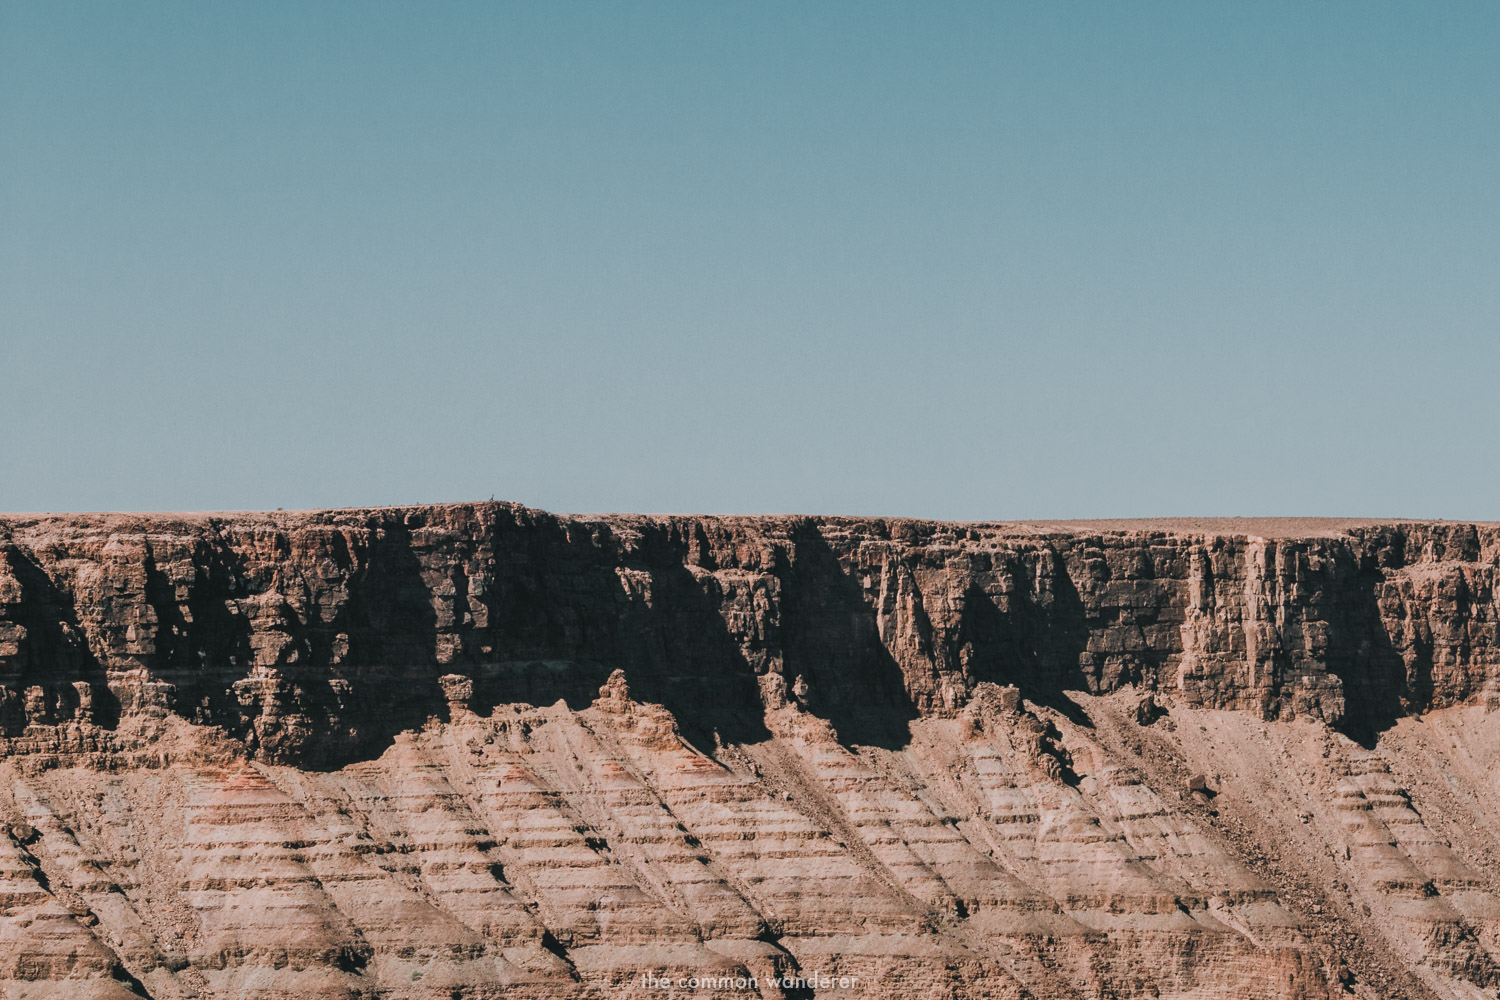 The cliffs of Fish River Canyon, Namibia